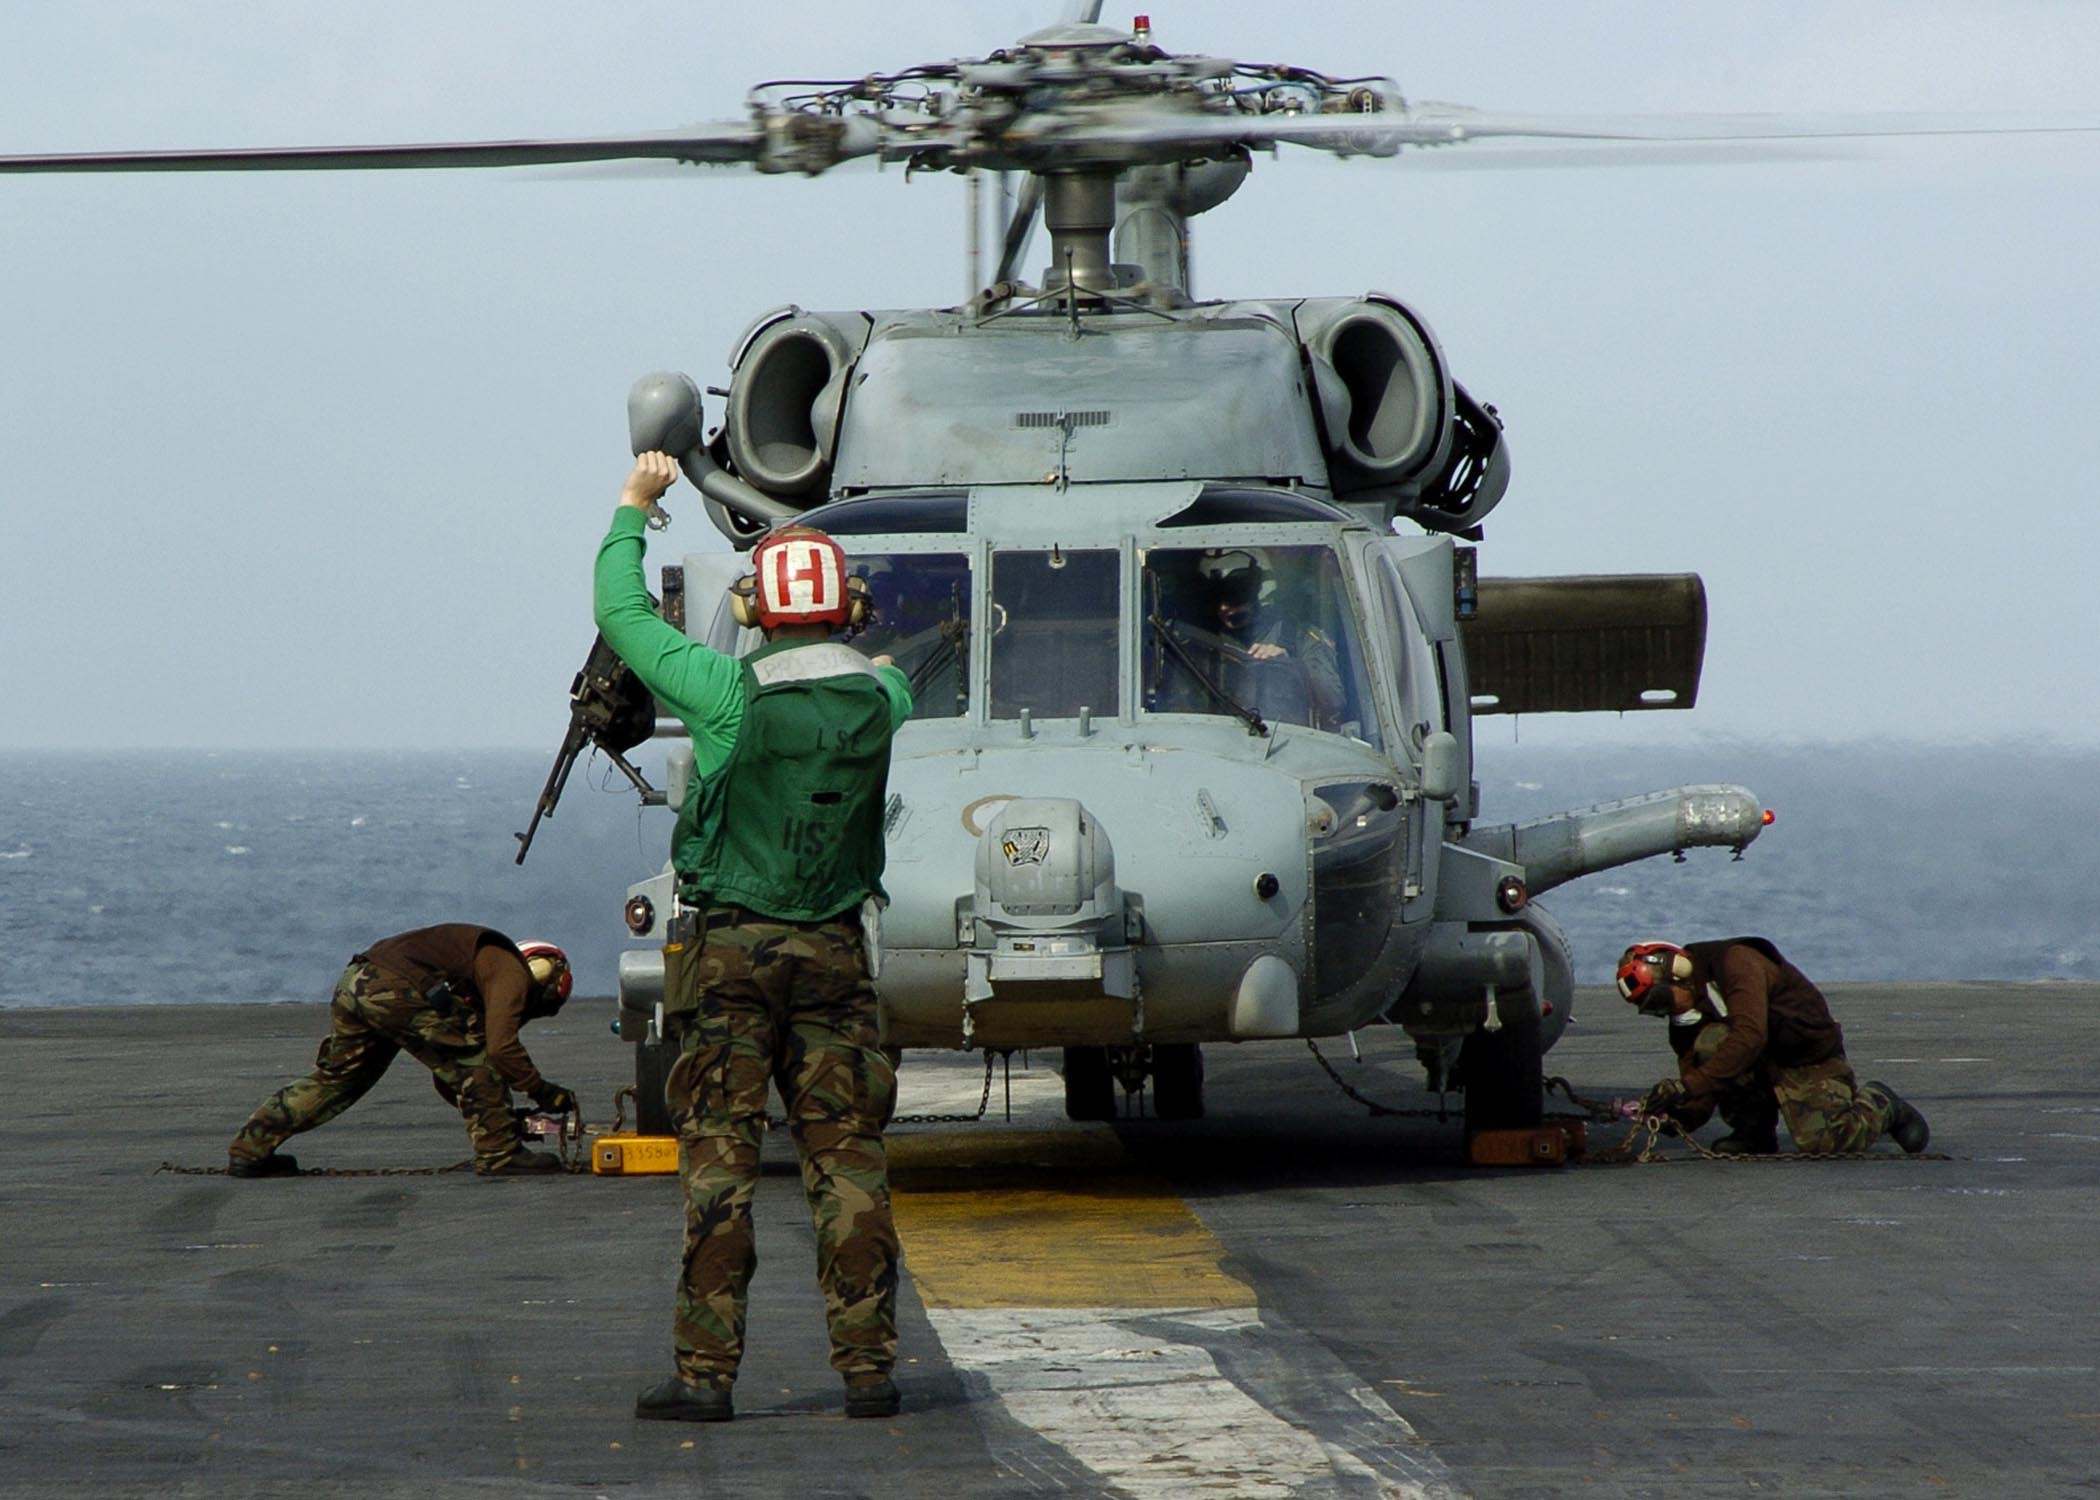 us navy helicopter with File Us Navy 050101 N 6817c 059 An Sh 60 Seahawk Helicopter Assigned To Helicopter Anti Submarine Squadron Two  Hs 2  Golden Falcons Is Prepared To Depart Uss Abraham Lincoln  Cvn 72  En Route To Aceh  Sumatra  Indonesia on File US Navy 050709 N 0050T 018 U S  Navy Chaplain  Cmdr  Ab Bihn Nguyen delivers an invocation during a funeral service held in honor of Senior Chief  SEAL  Daniel R  Healy  at St  Charles Borromeo Catholic Church furthermore H 56 walk besides File us navy 020223 N 6492h 501 uss john f  kennedy passes gibraltar moreover File PBY Catalina michael furthermore File US Navy 051025 M 6538A 013 A U S  Marine Corps CH 53 Super Stallion helicopter  assigned to Marine Heavy Helicopter Squadron Four Six Six  HMH 466   externally lifts a UH 1N Huey over Iraq.